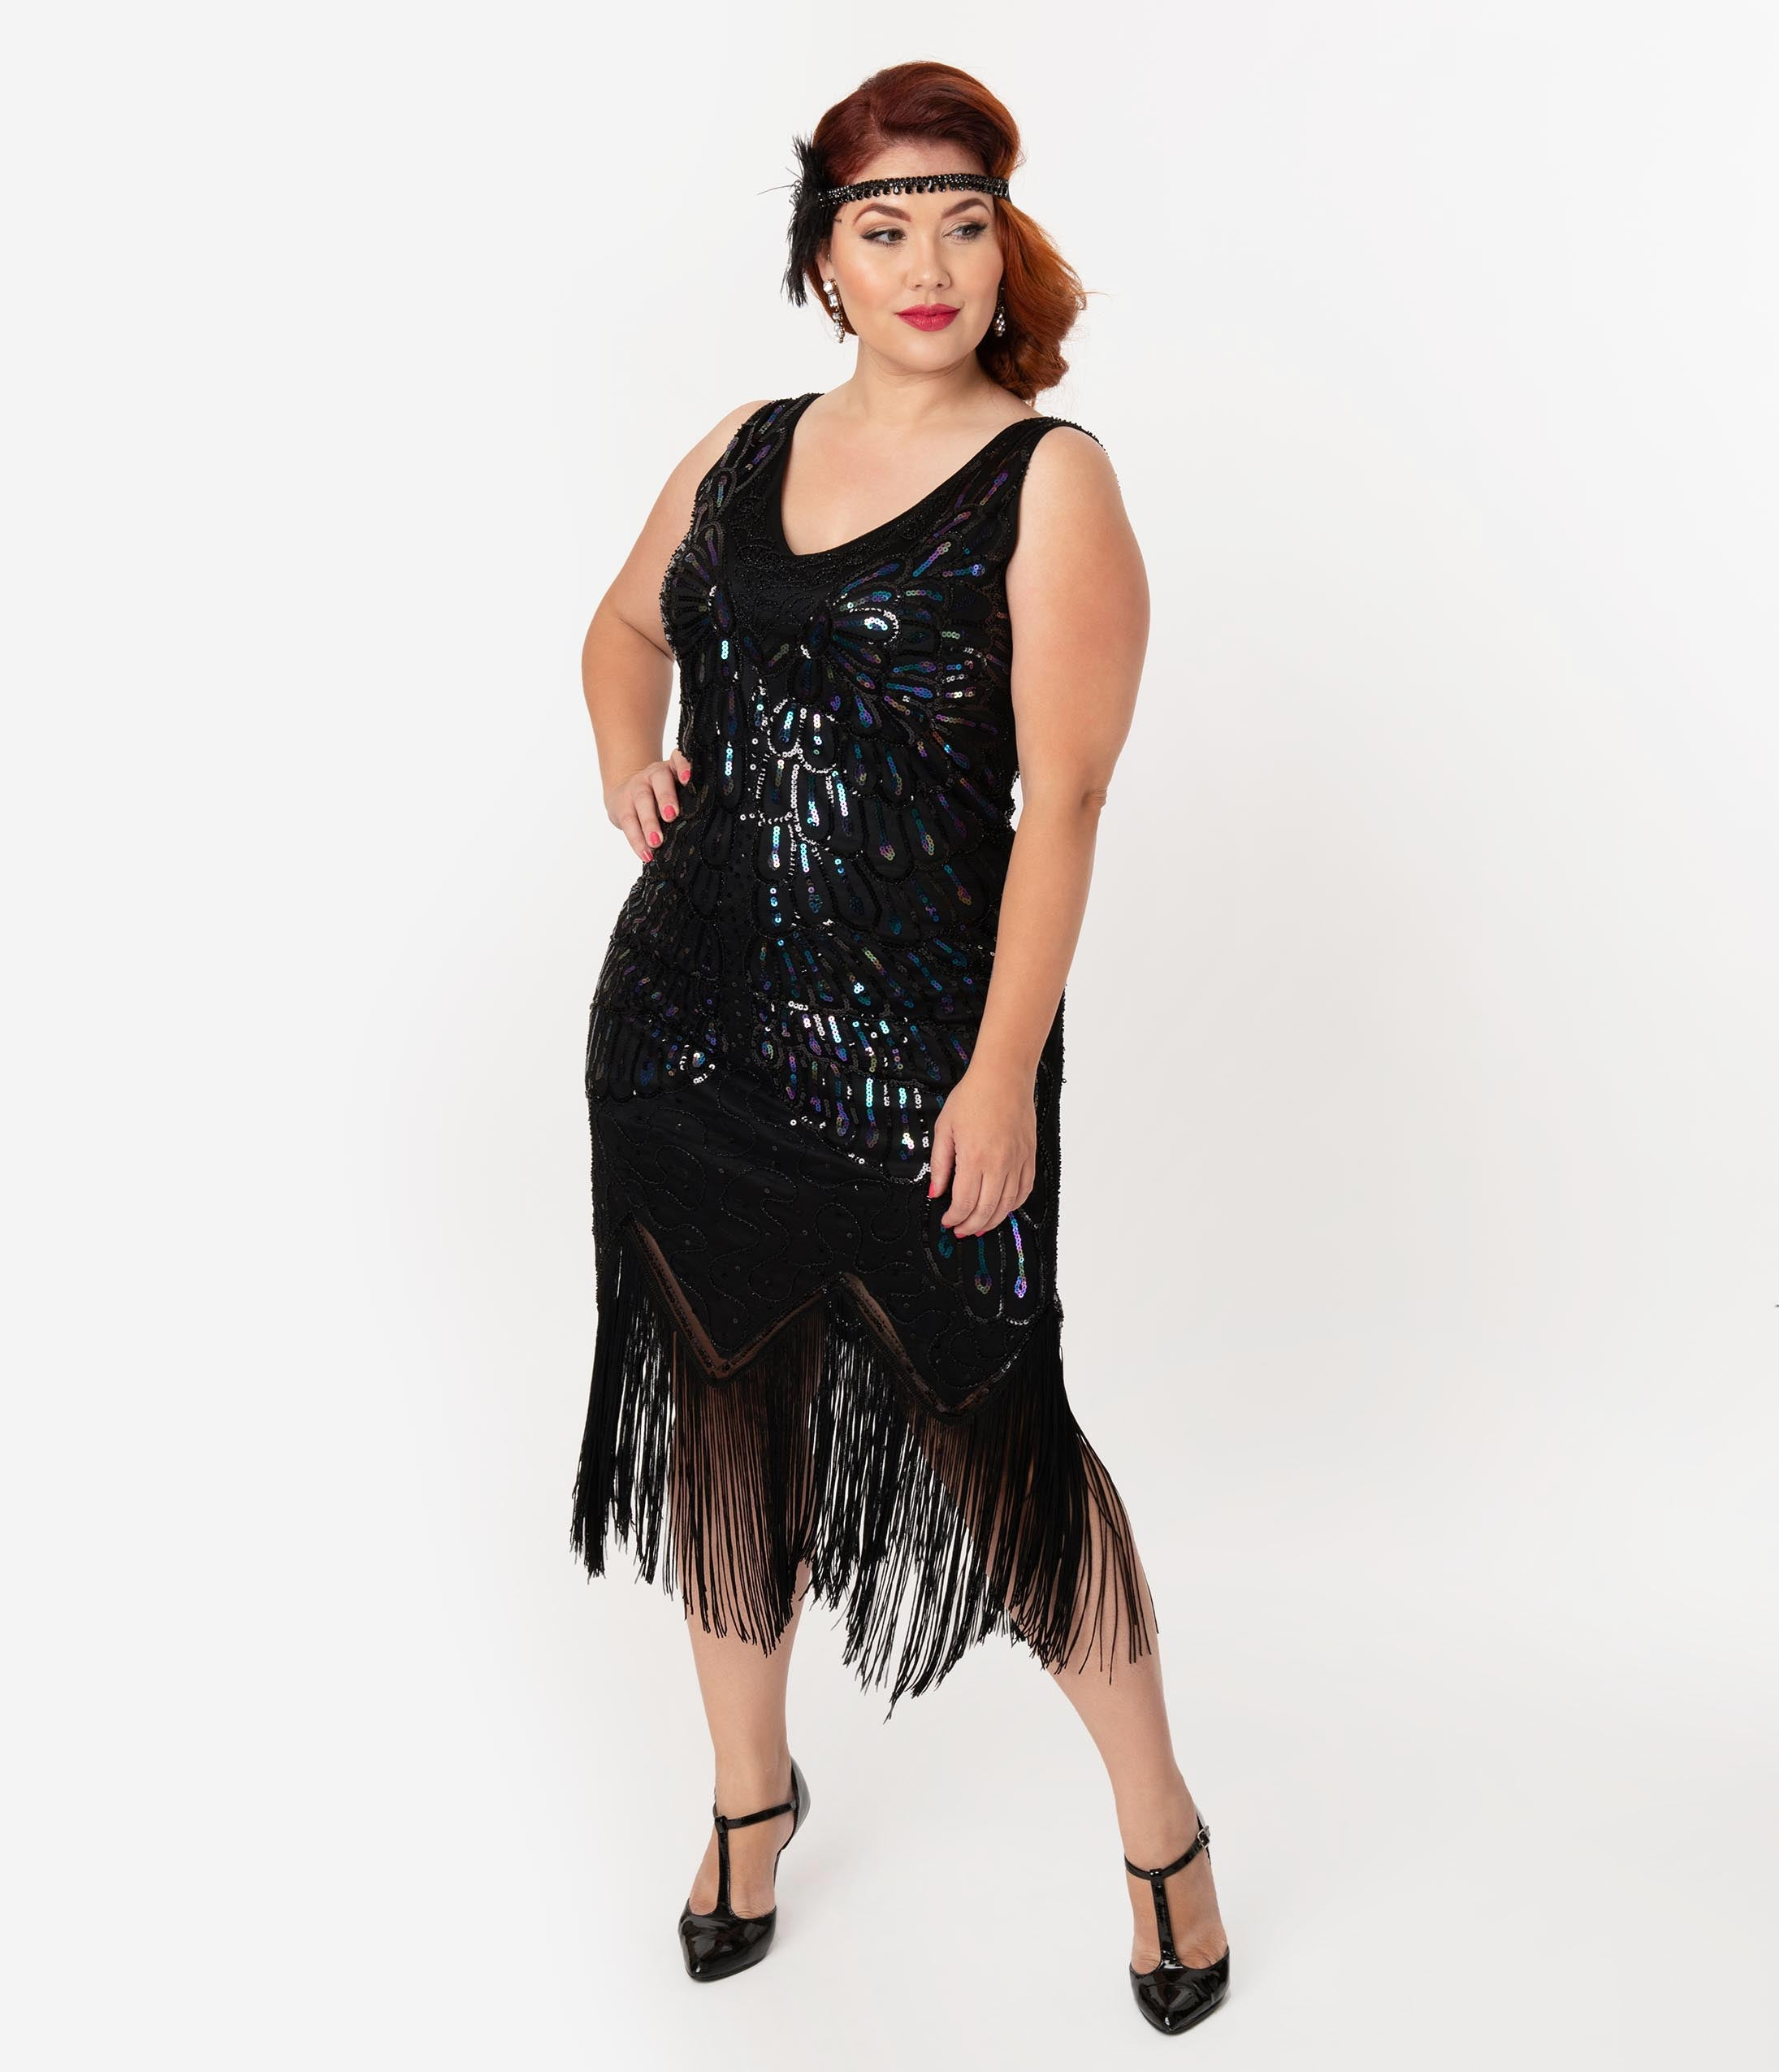 Flapper Dresses & Quality Flapper Costumes Unique Vintage Plus Size Black Iridescent Sequin Sleeveless Marion Flapper Dress $98.00 AT vintagedancer.com